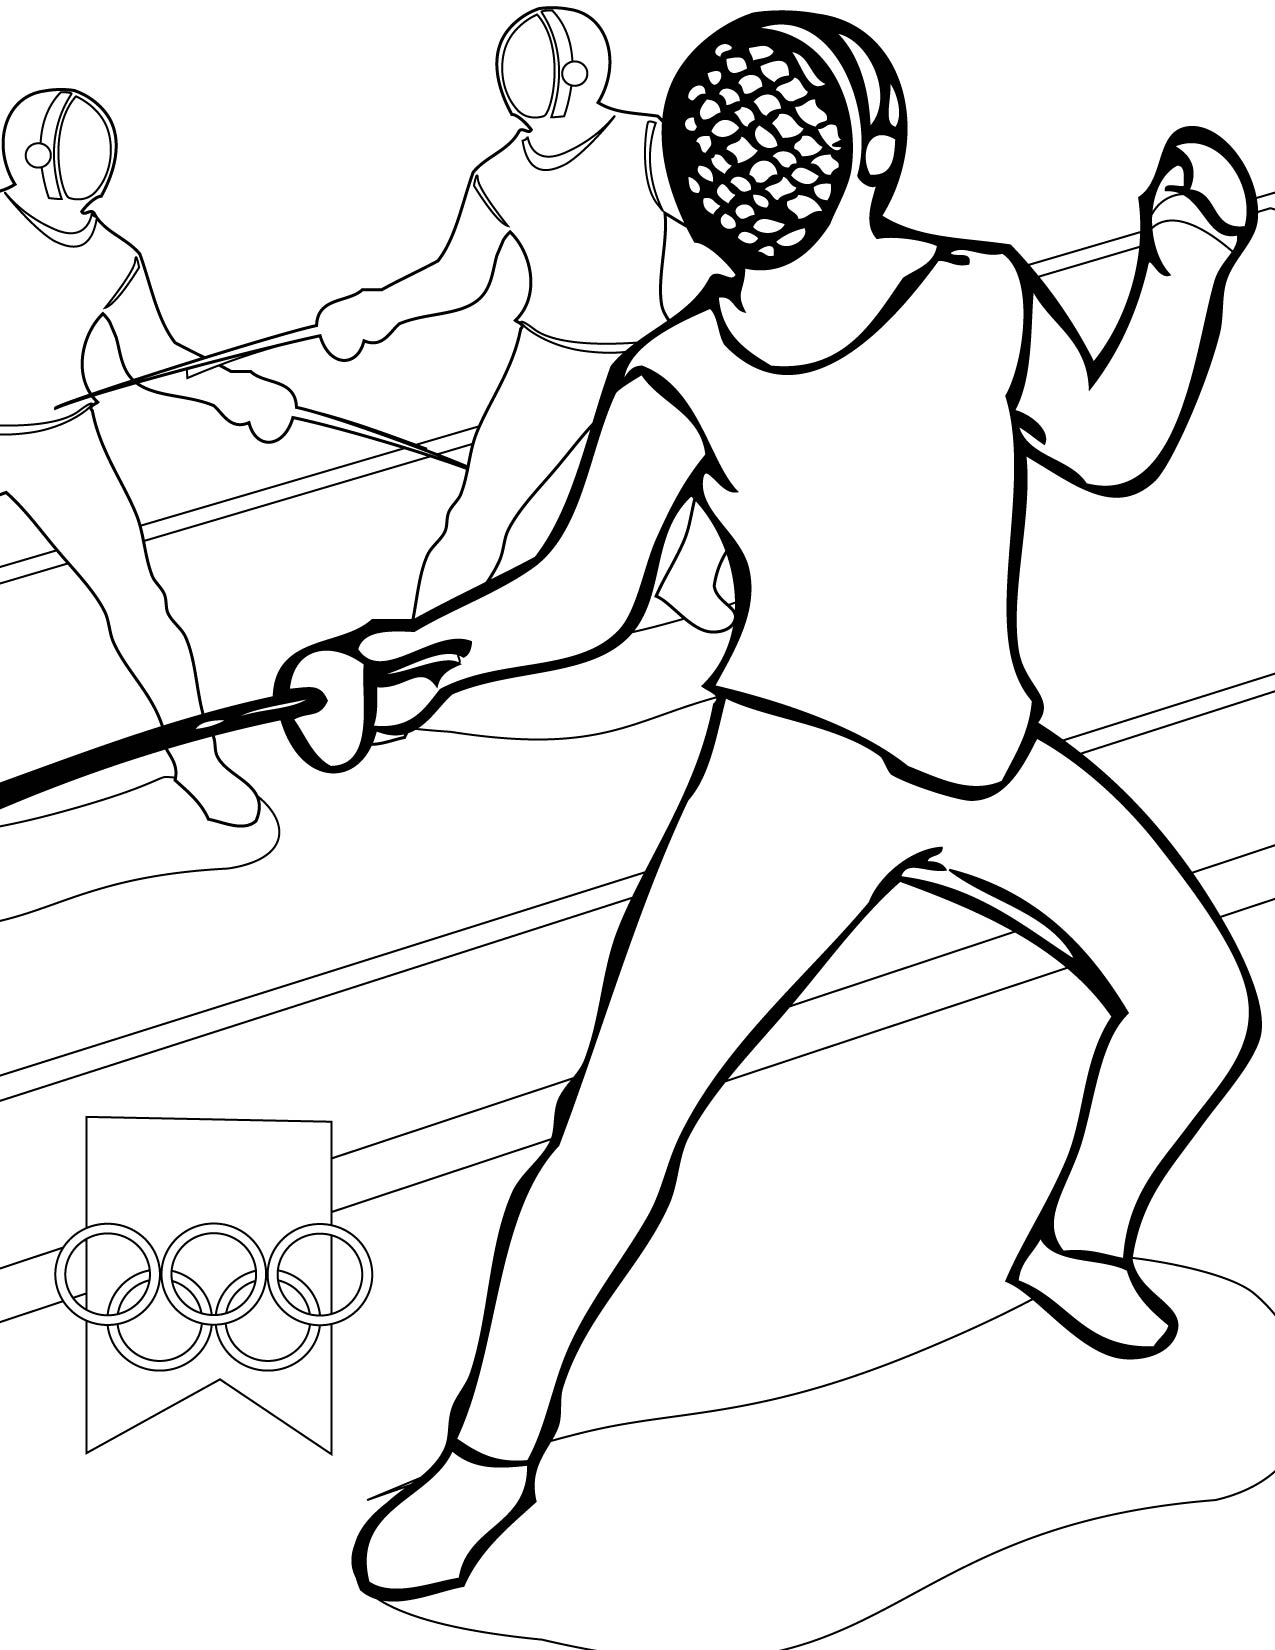 Handipoints Coloring Pages